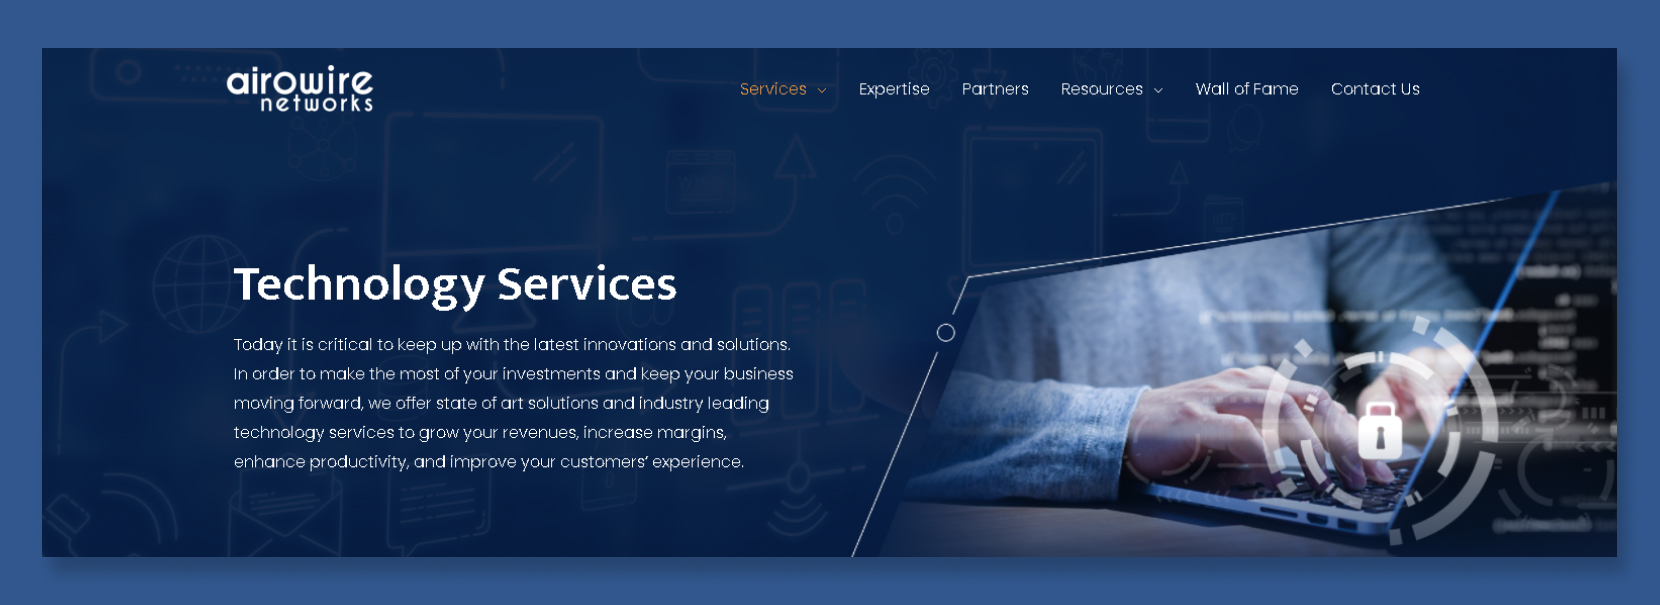 Website Design for Airowire Networks